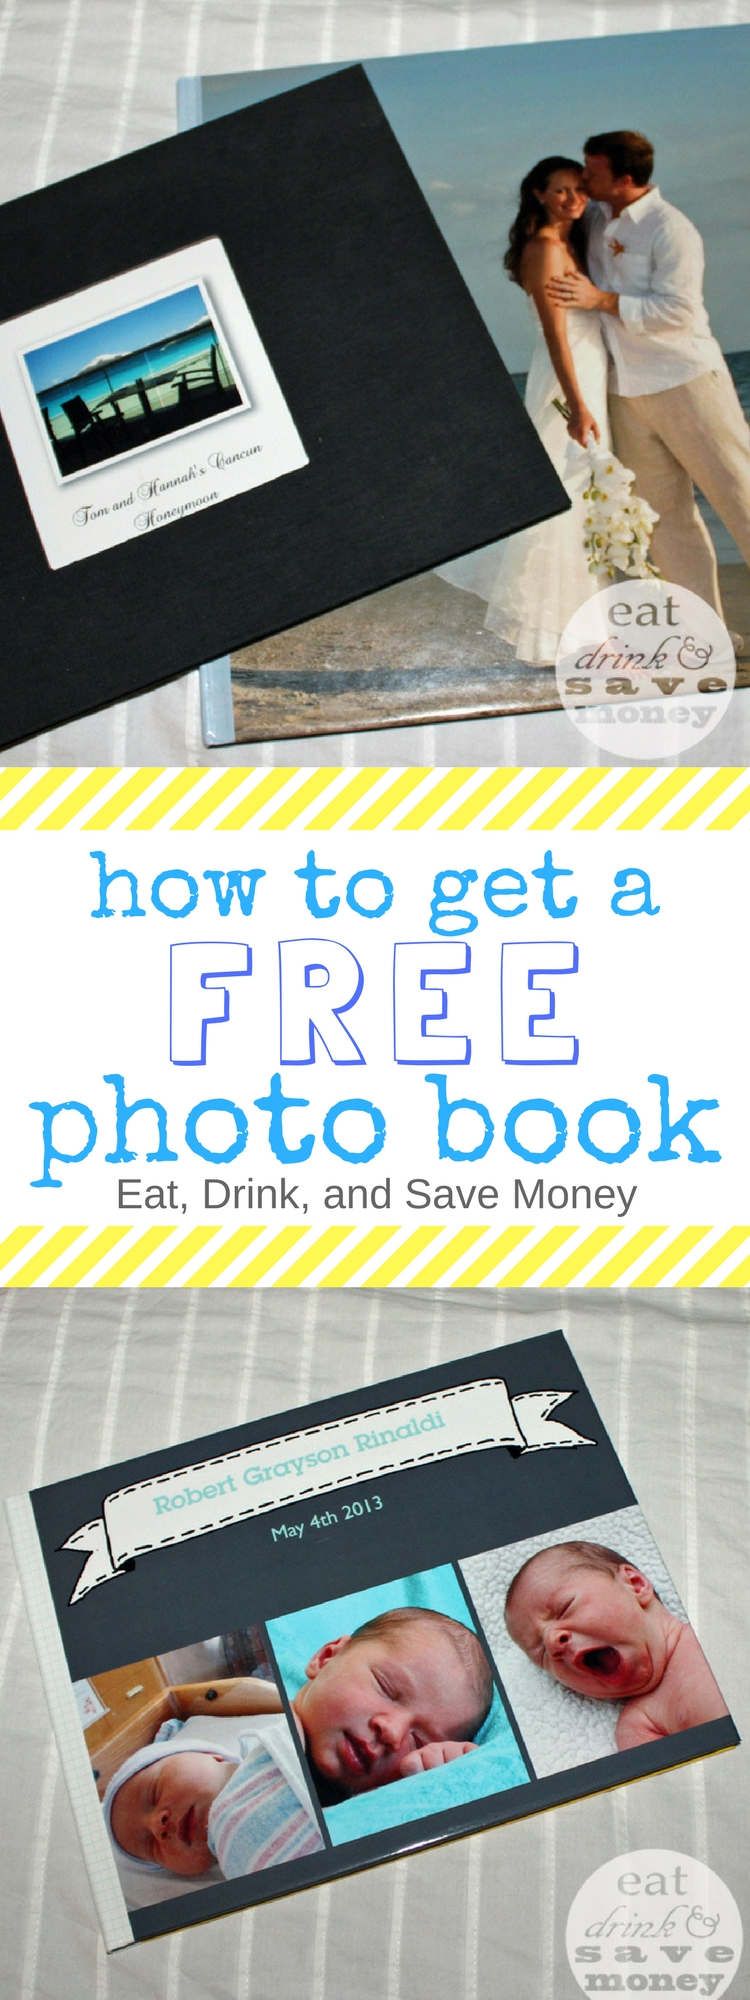 how to get a free photobook. Check out this amazing deal for a free photo book from Shutterfly in 2017